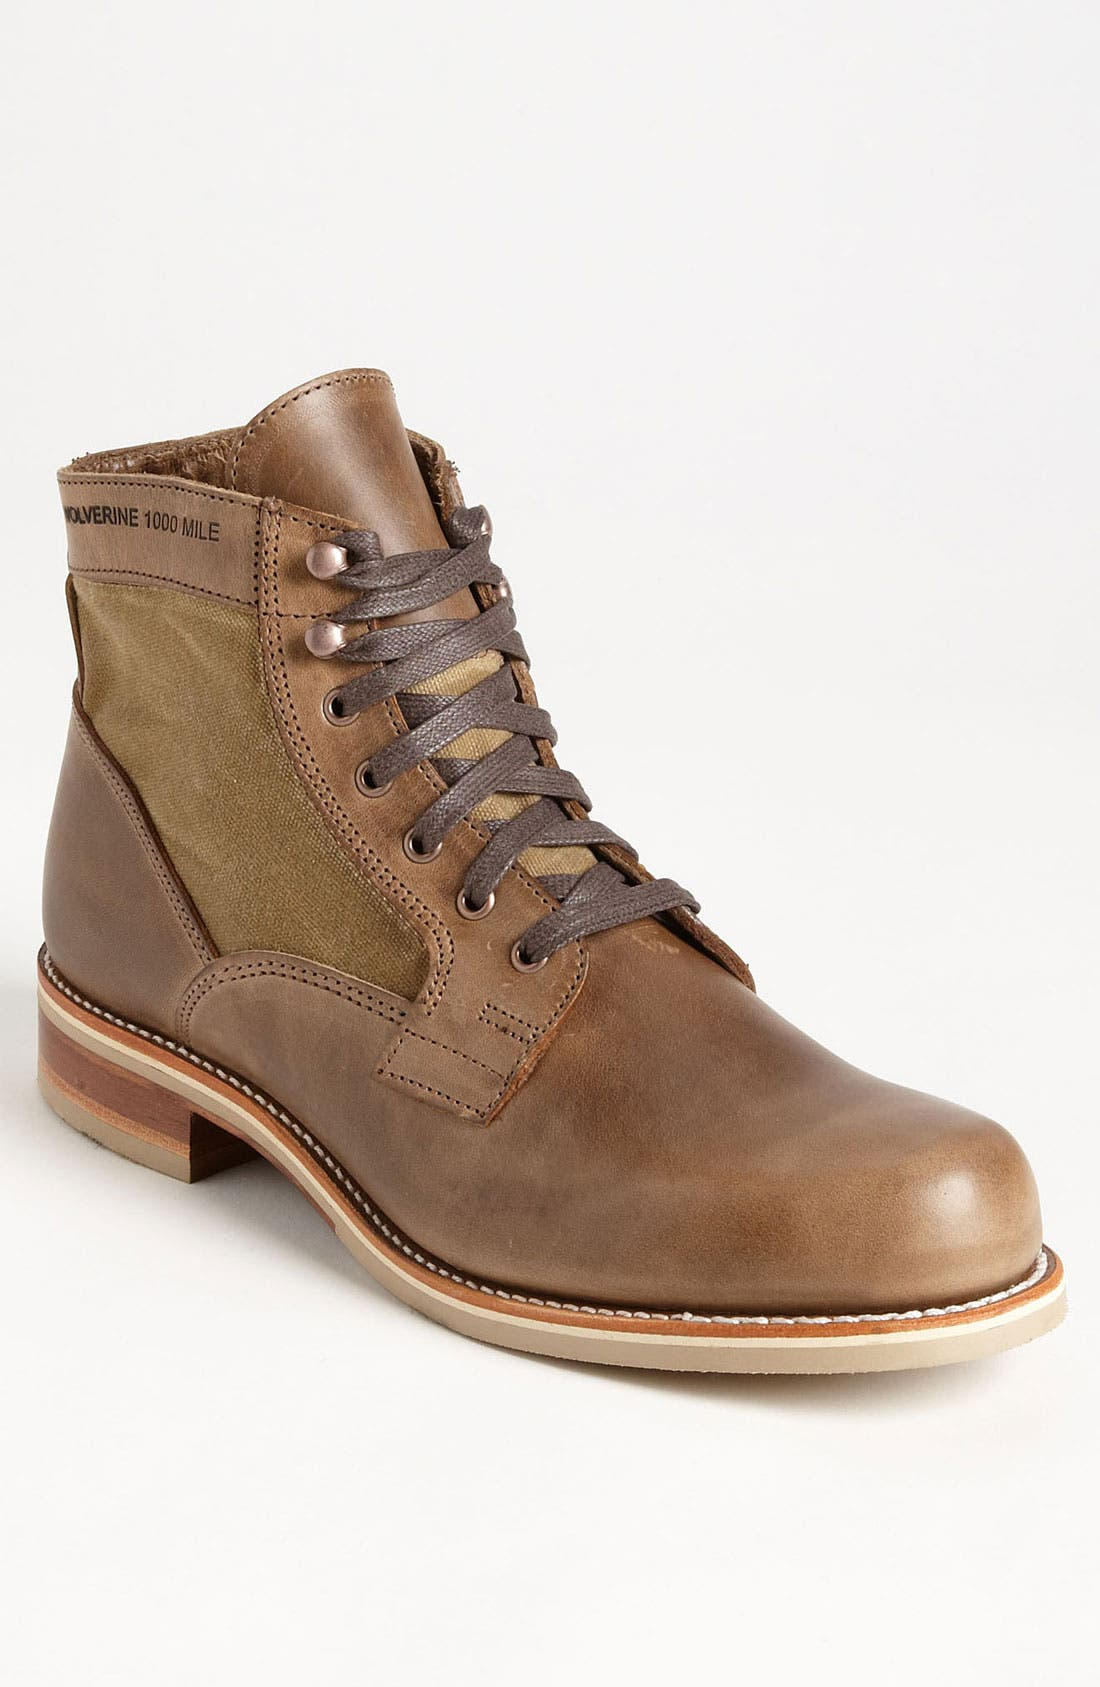 '1000 Mile - Whitepine' Boot,                         Main,                         color, Natural Brown